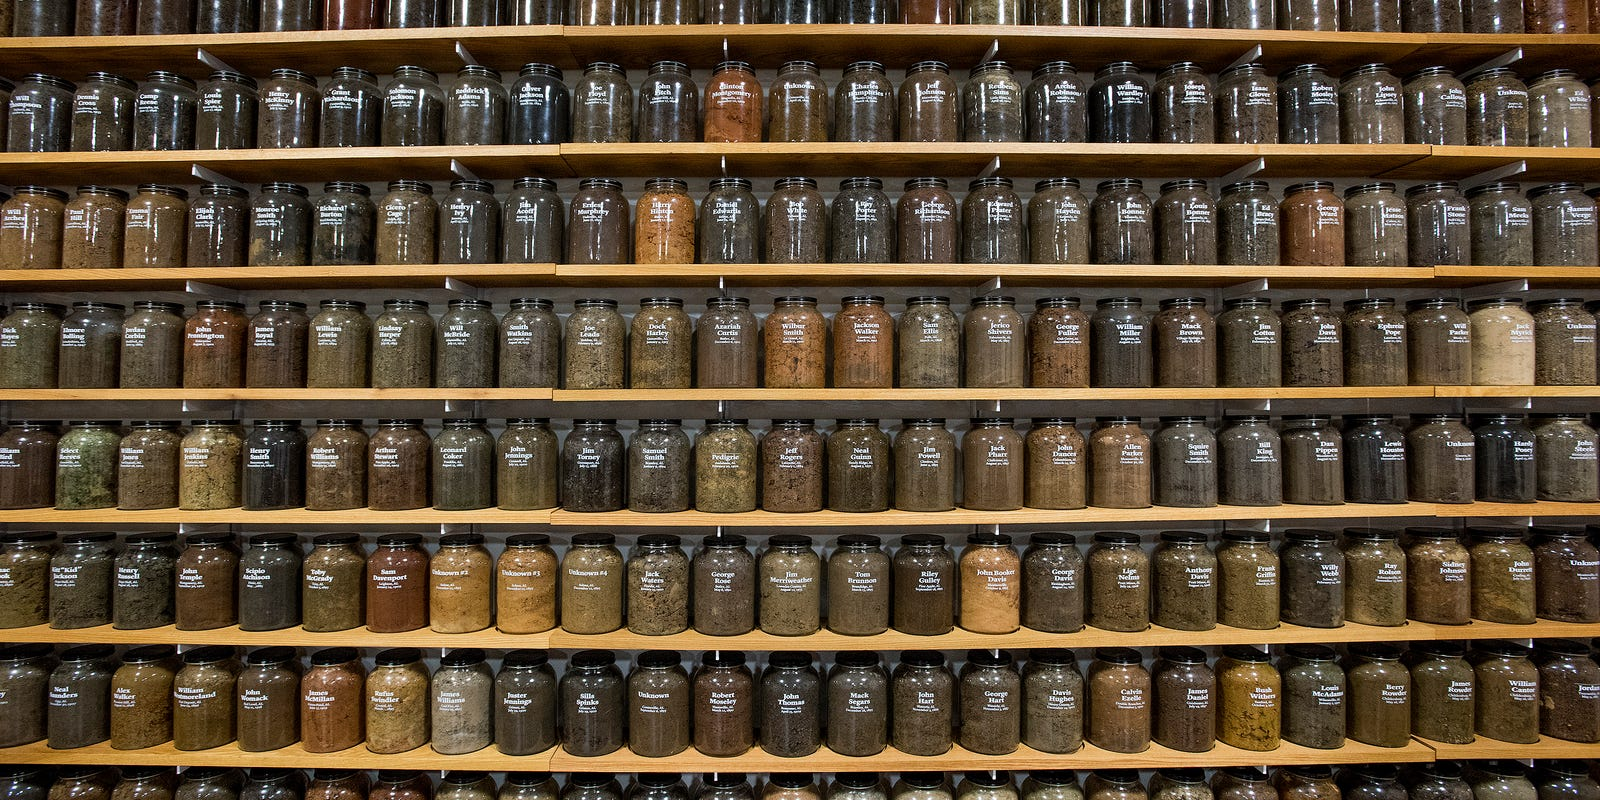 Image result for These are jars filled with soil from the sites of killings: